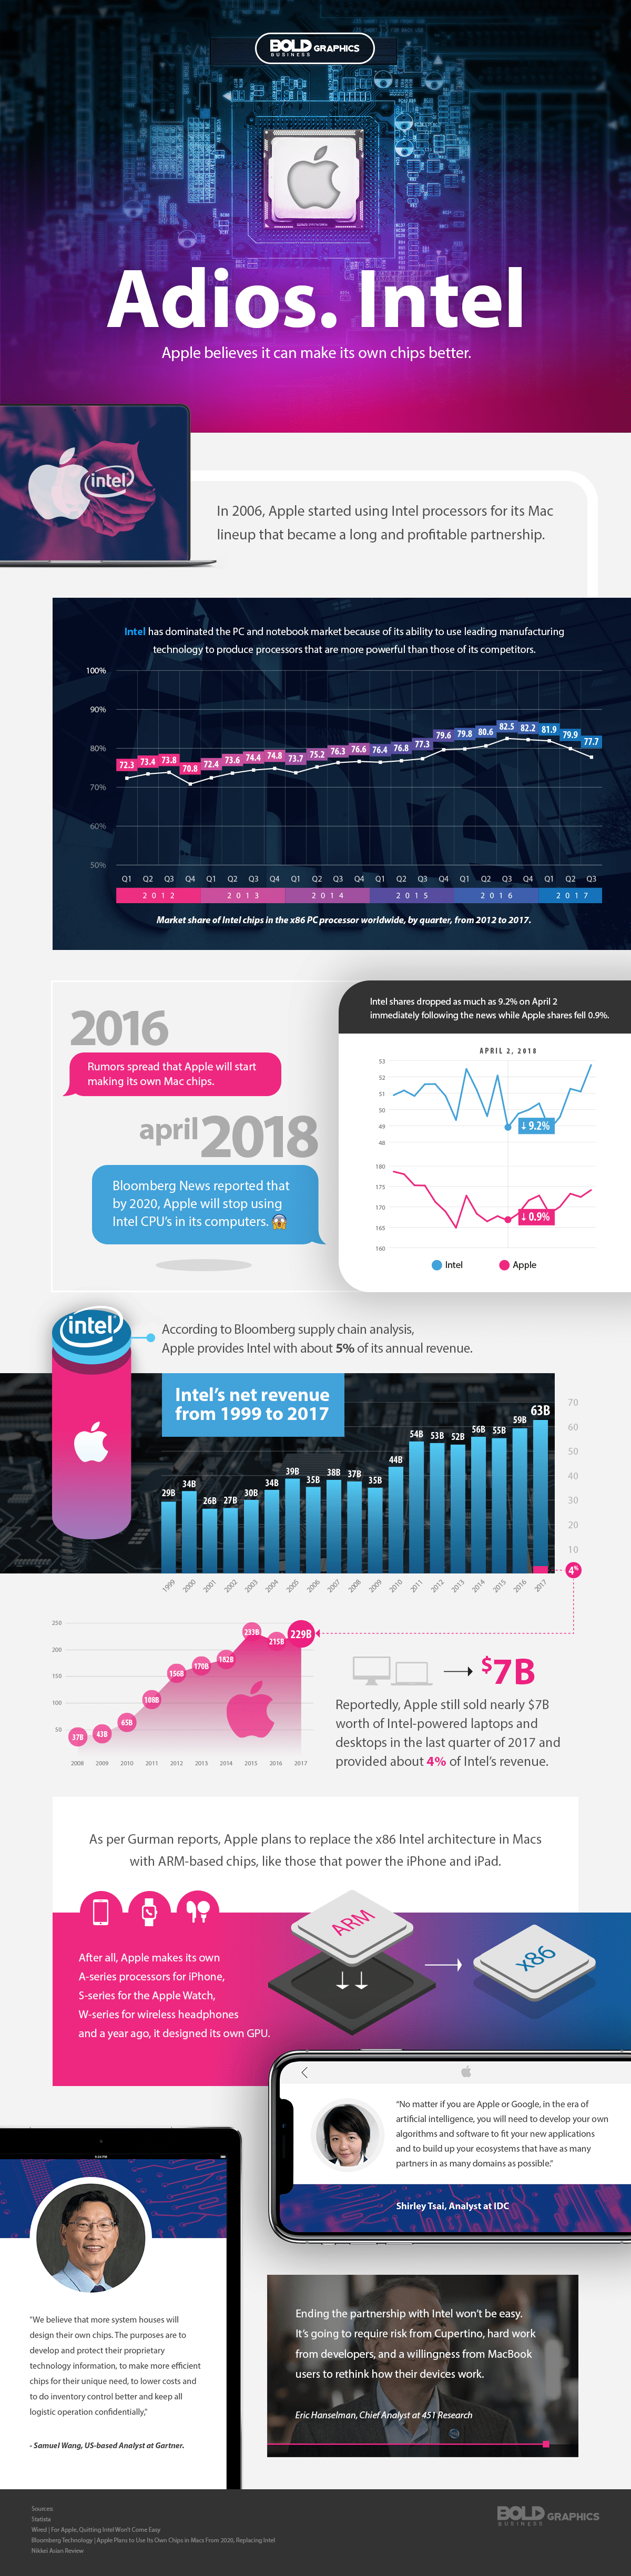 Apple transitions away from Intel computer chips infographic